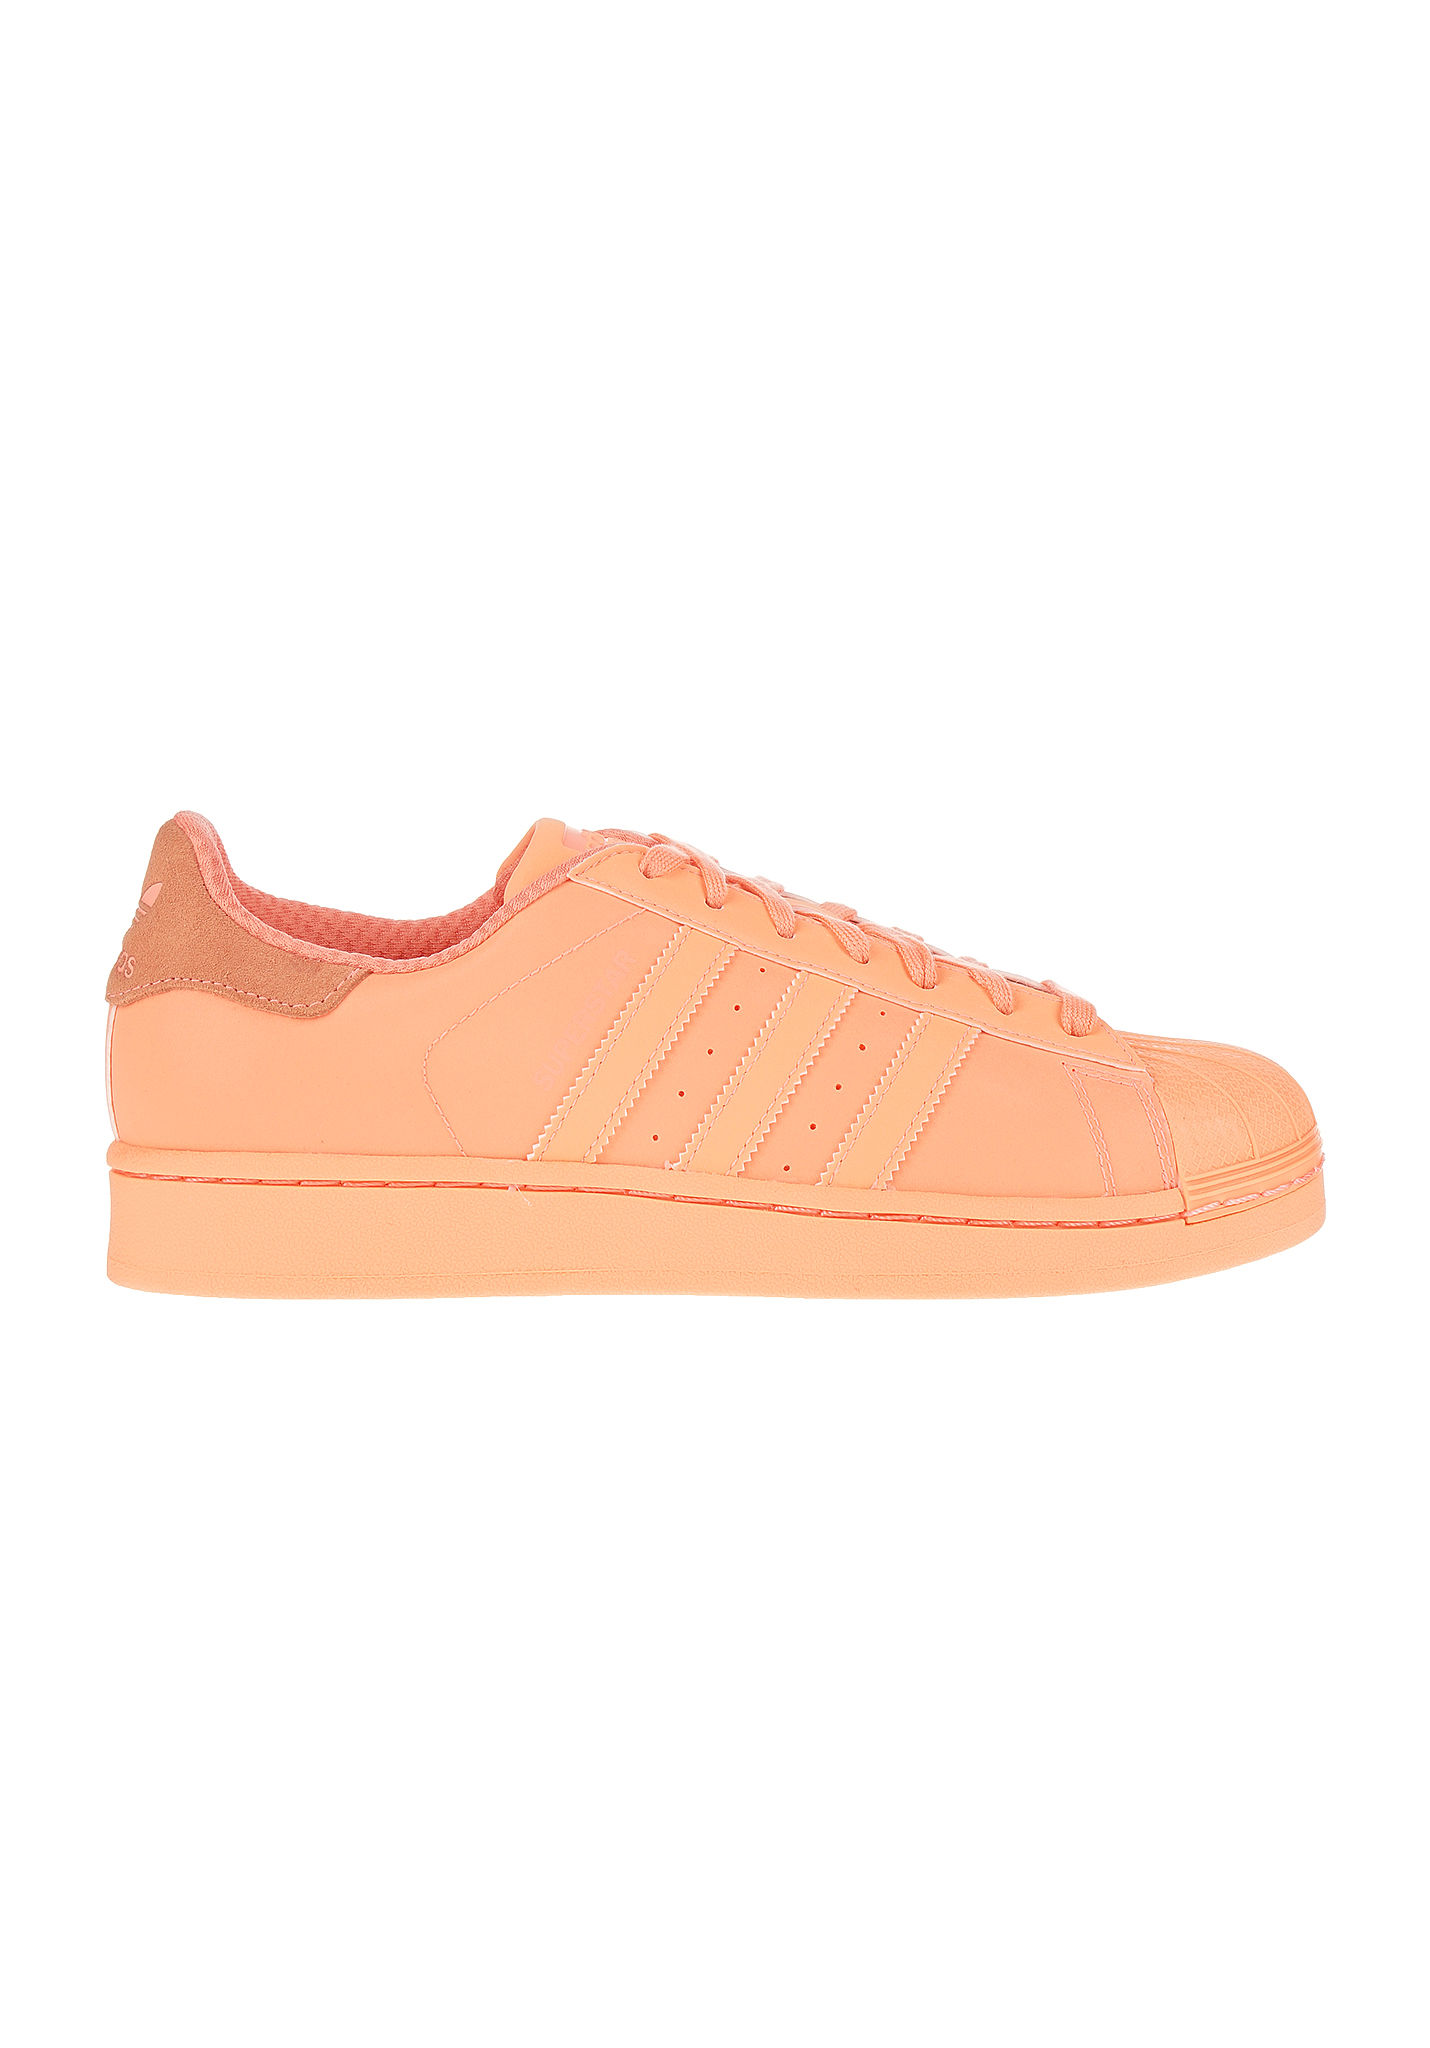 adidas originals superstar arancione